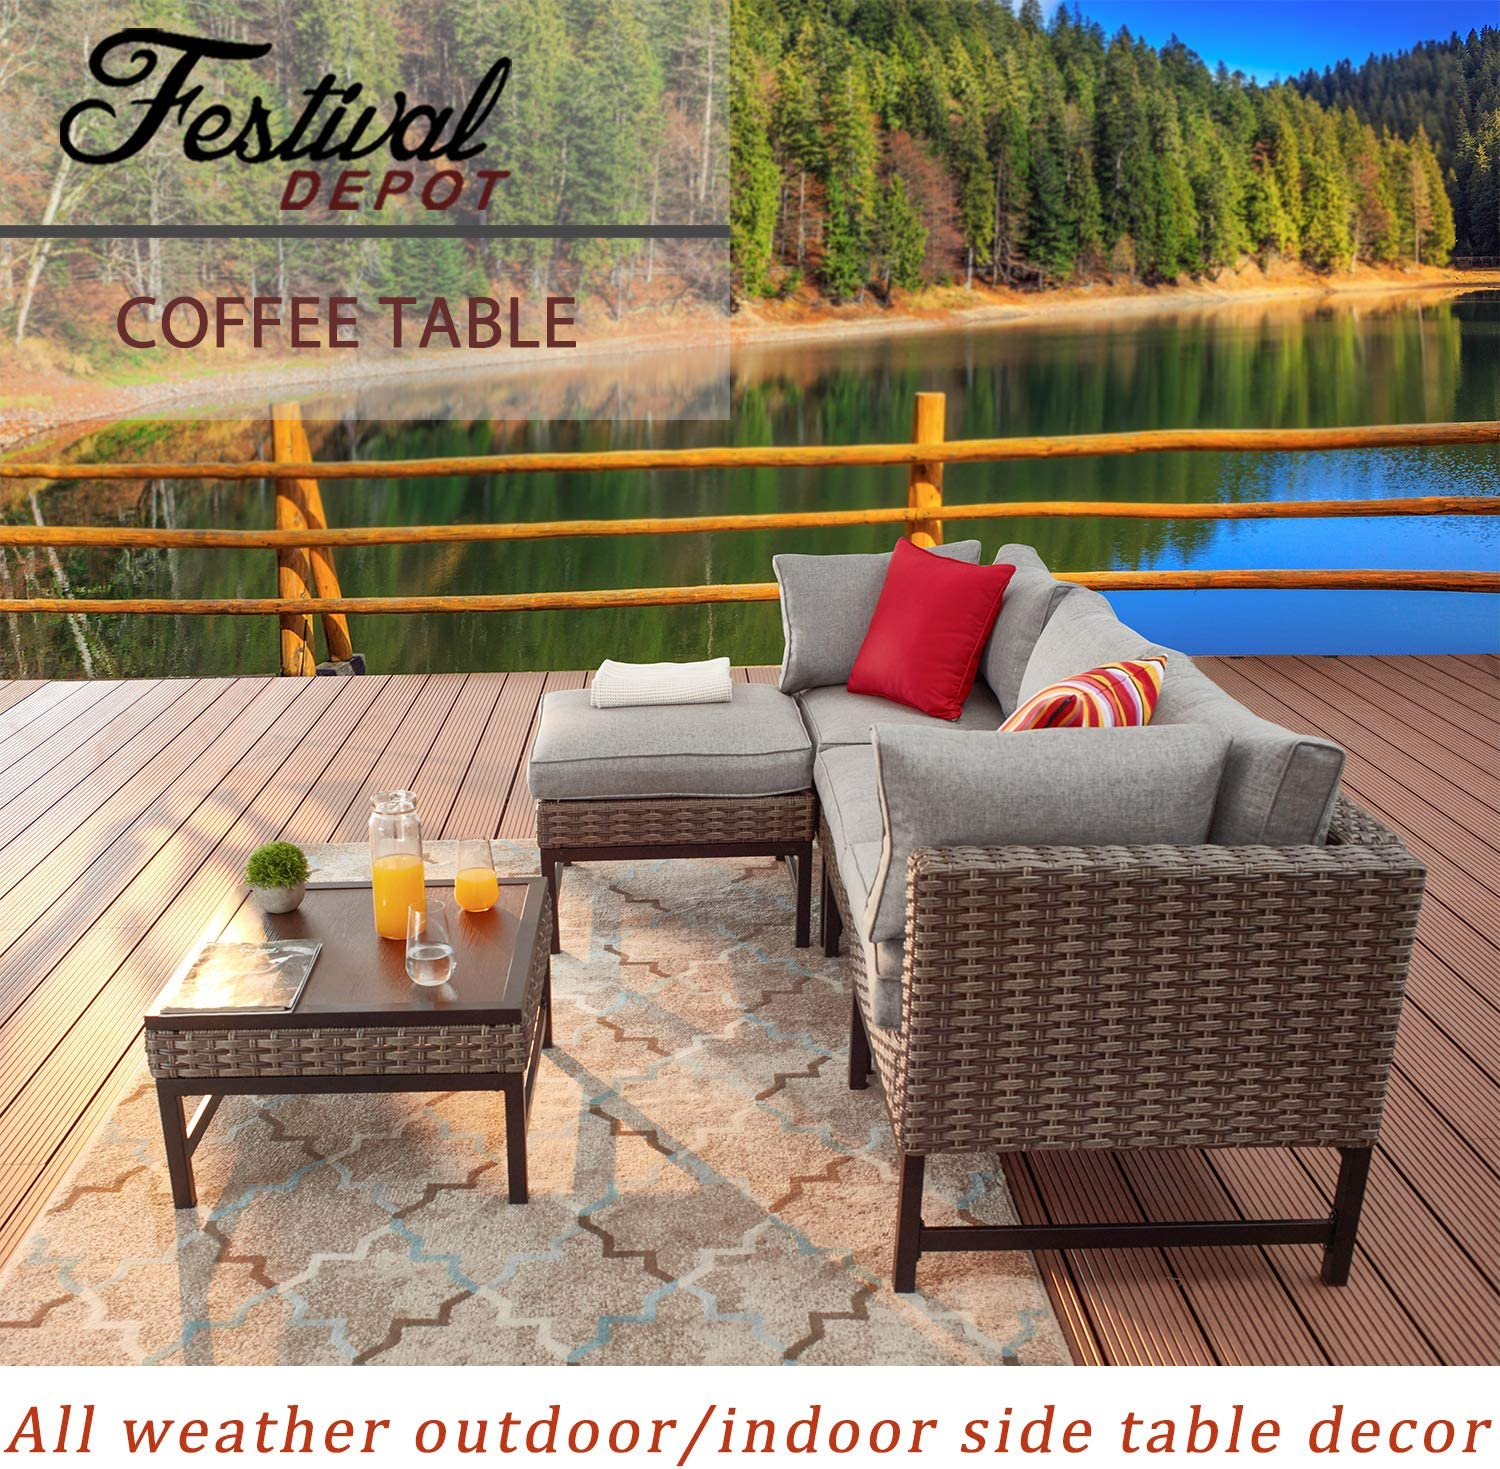 Festival Depot Metal Outdoor Side Coffee Table Patio Bistro Living Room Dining Table Wood Grain Top Wicker Rattan Furniture with Steel Legs Brown Black Rectangle